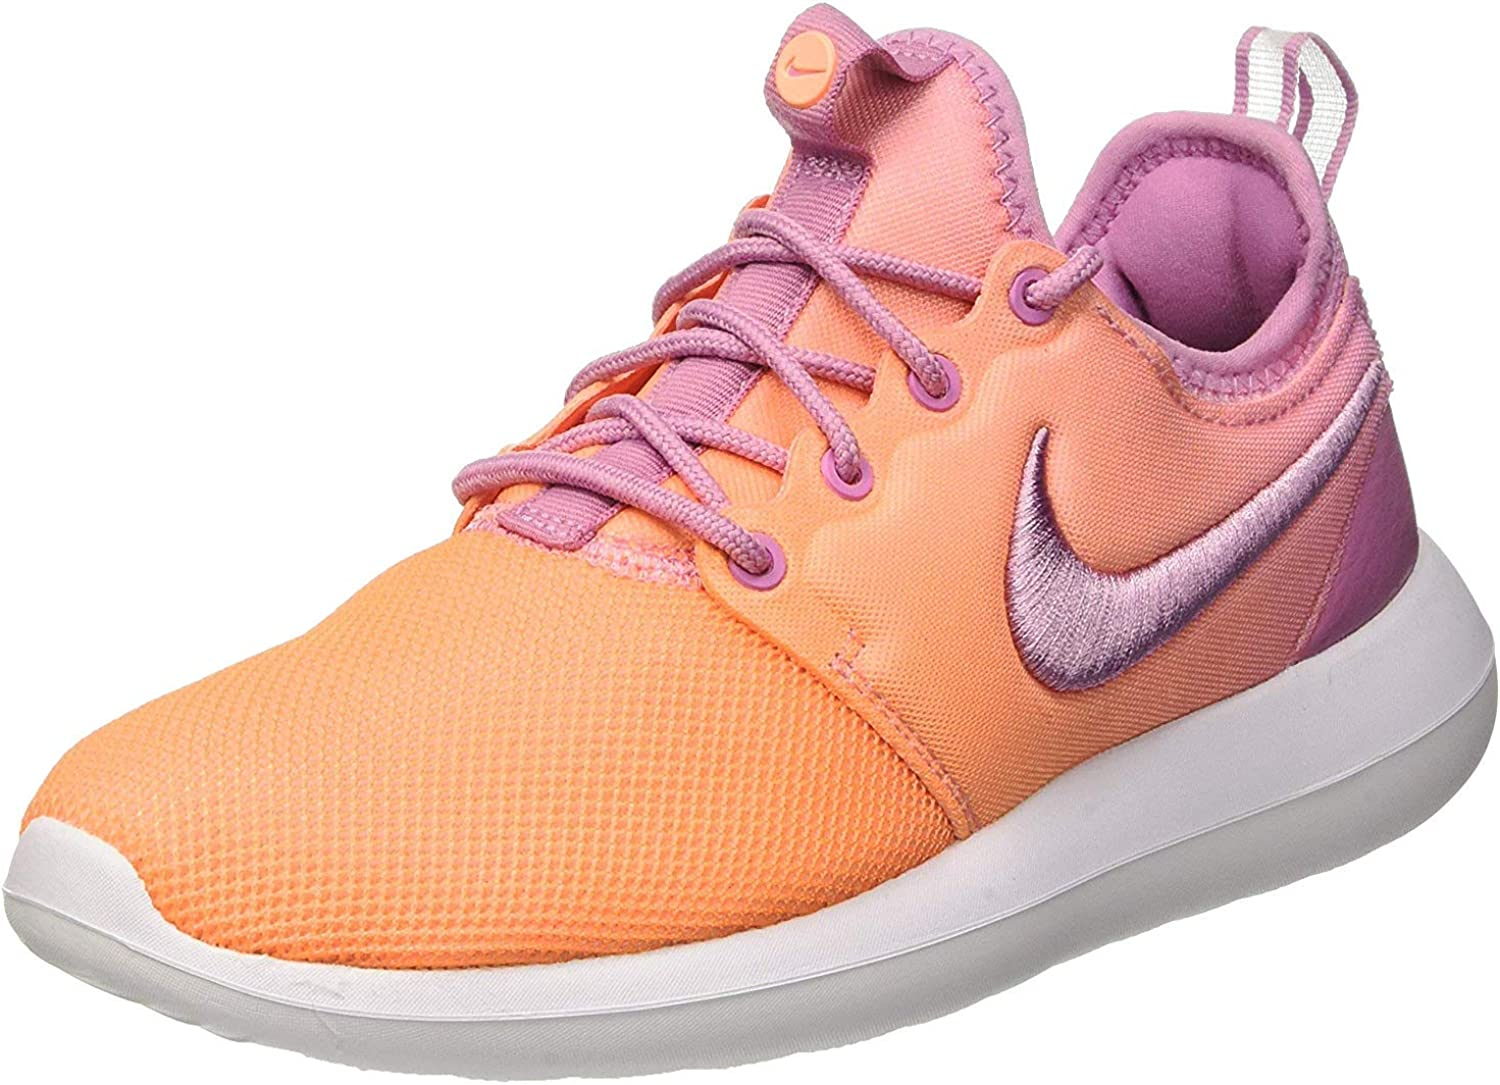 Nike W Roshe Two Br Womens Running-shoes 896445